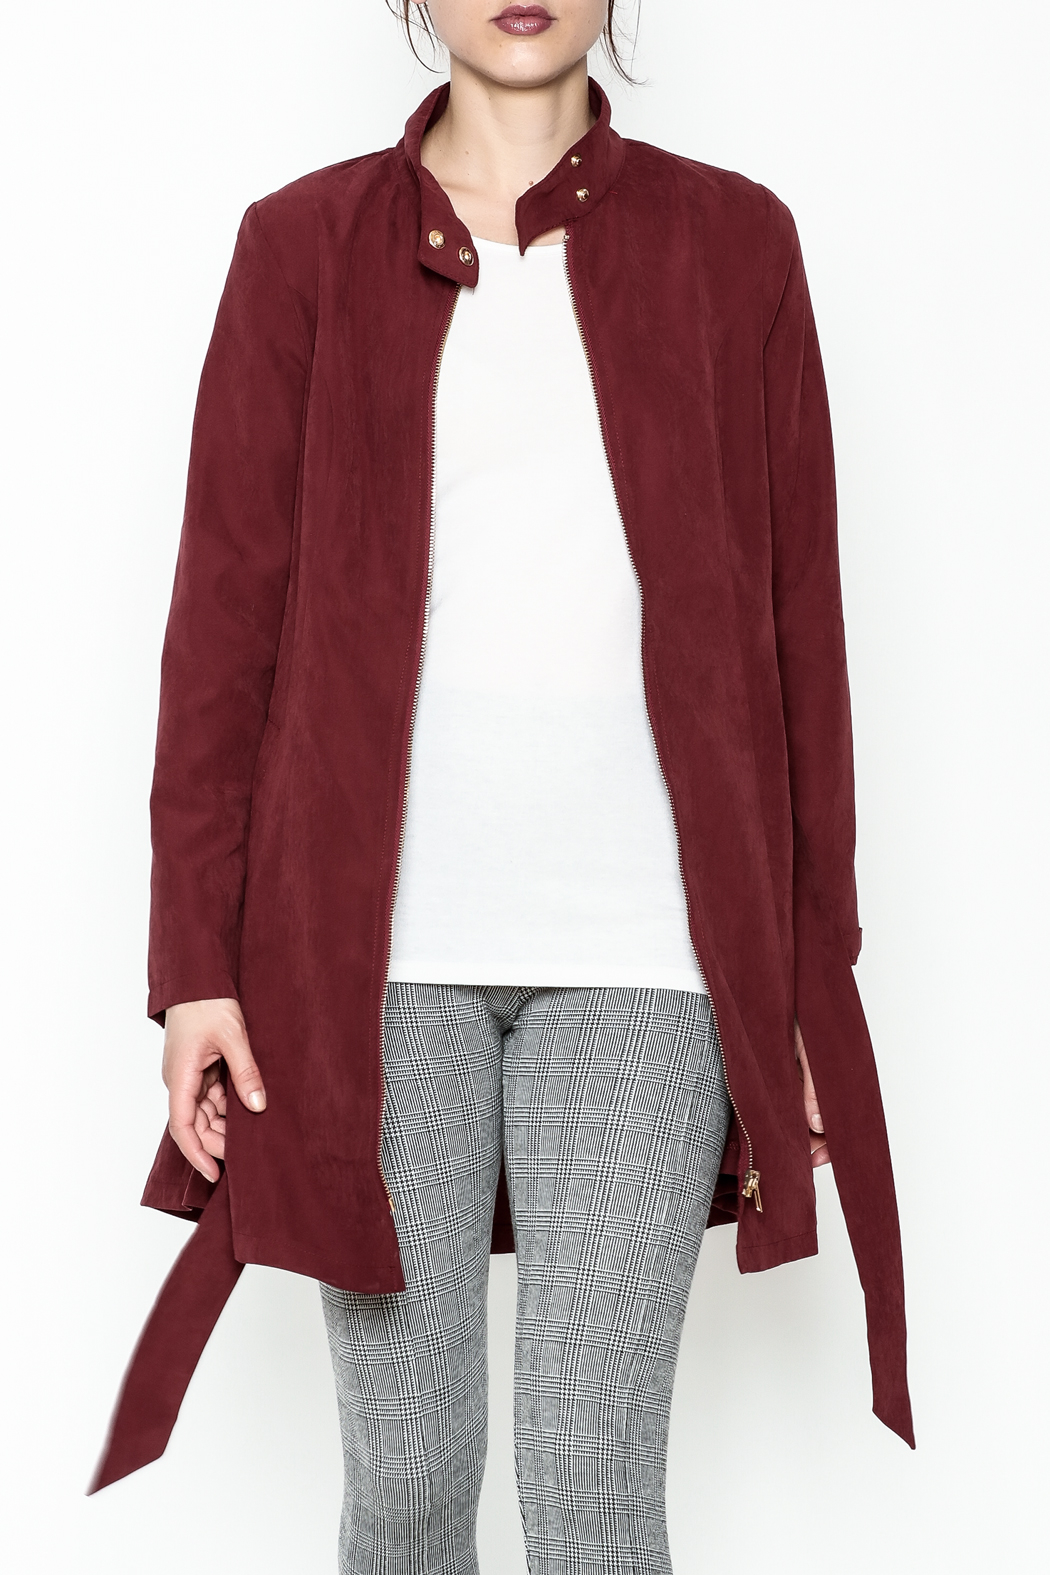 MICHEL Zip Up Jacket - Front Cropped Image